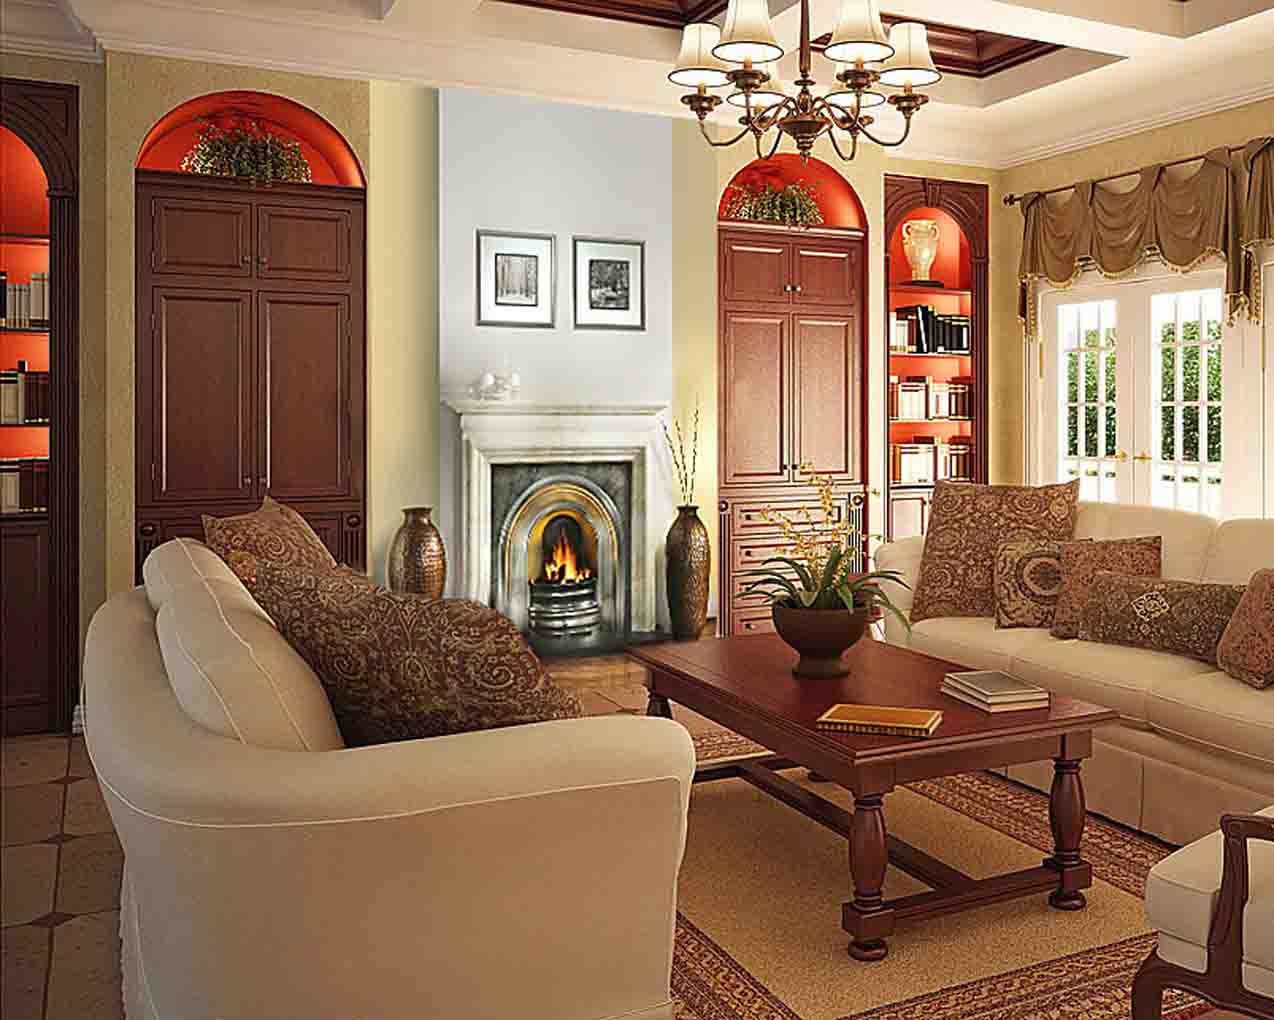 Home decor ideas home and living for Living room decorating ideas pictures